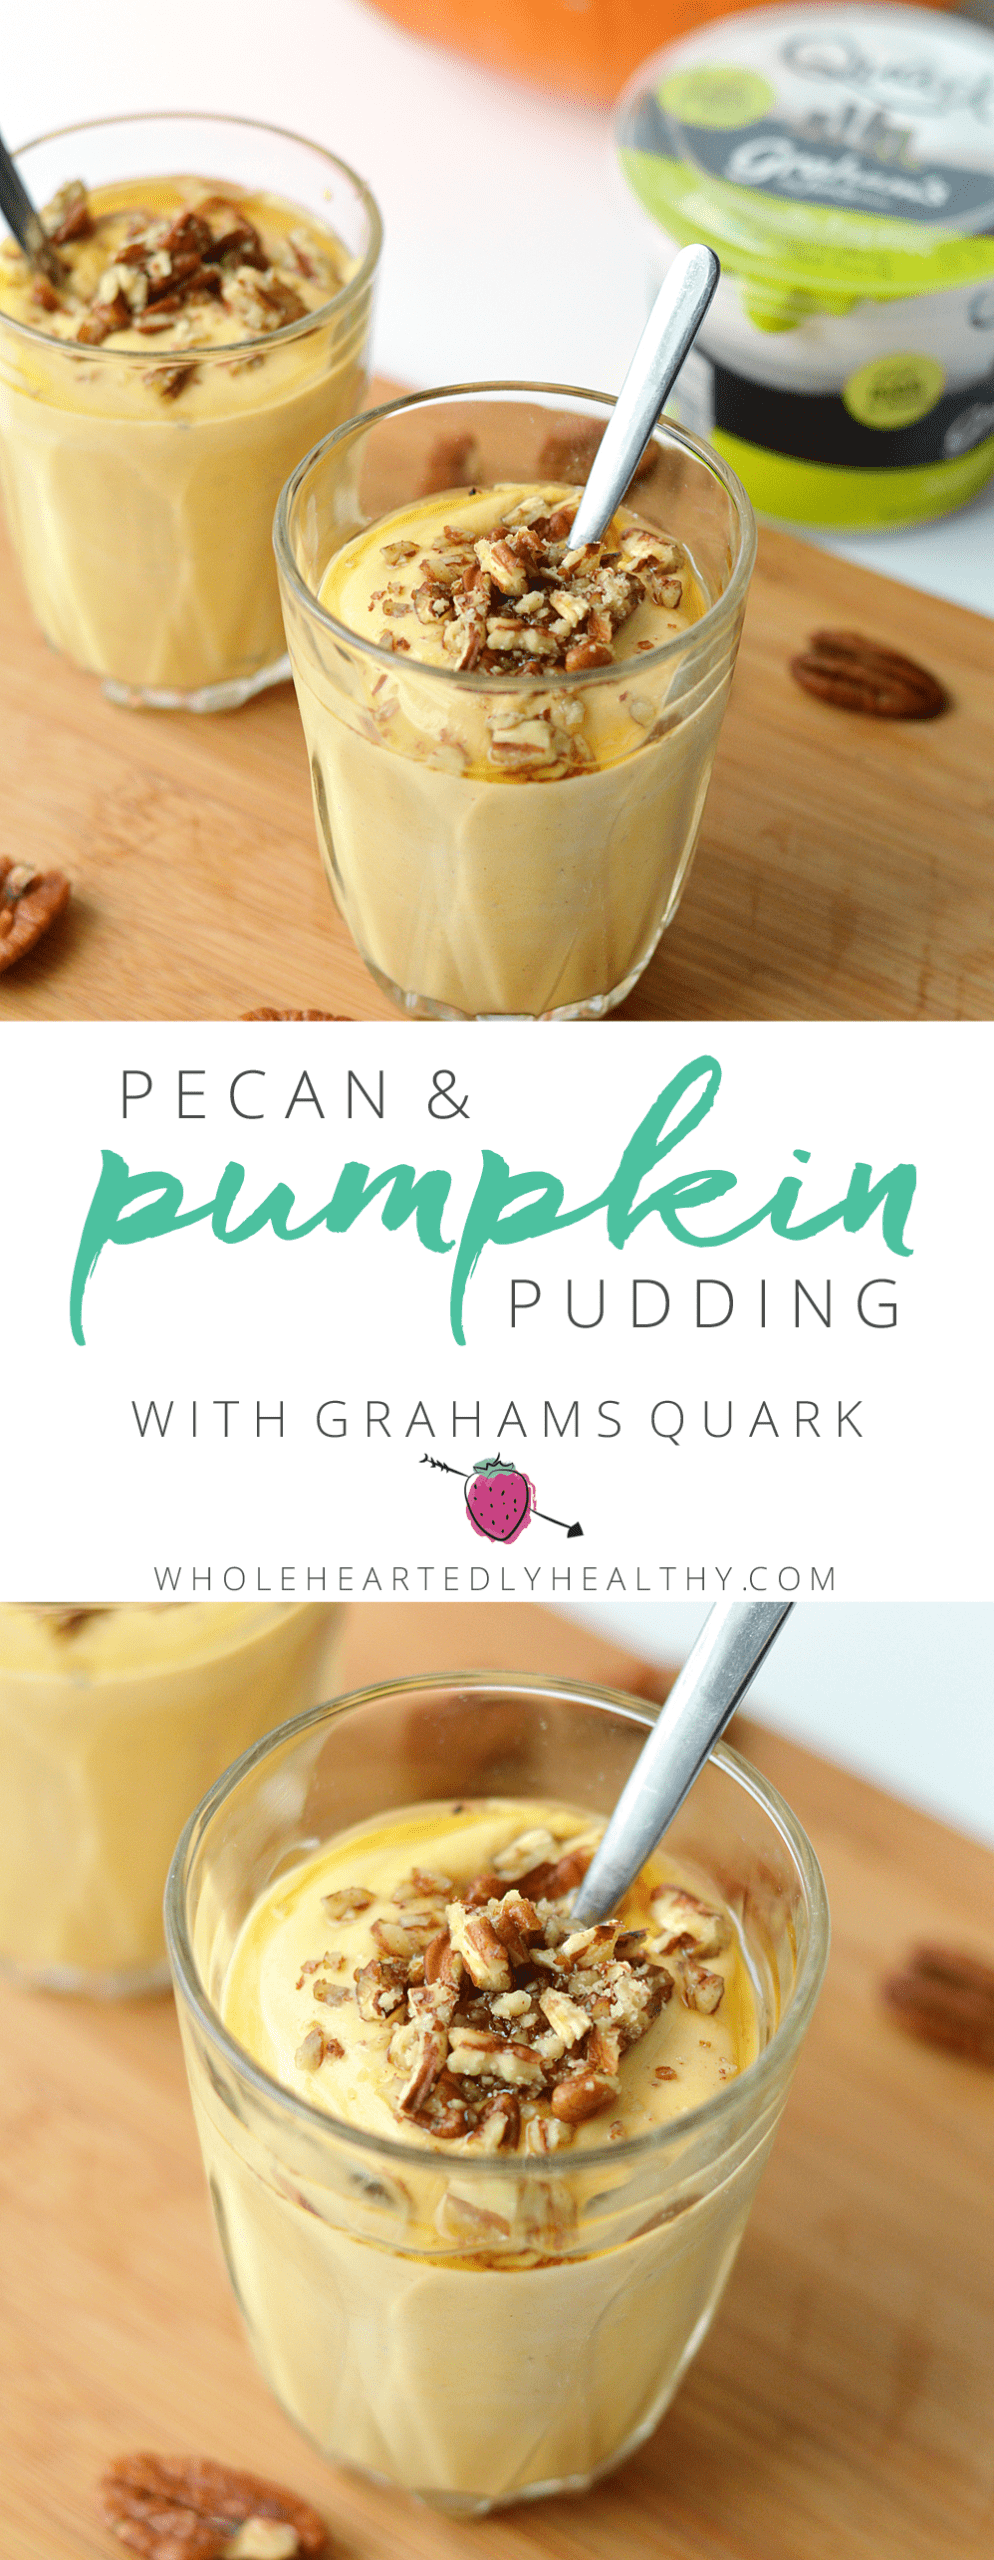 pecan pumpkin pudding